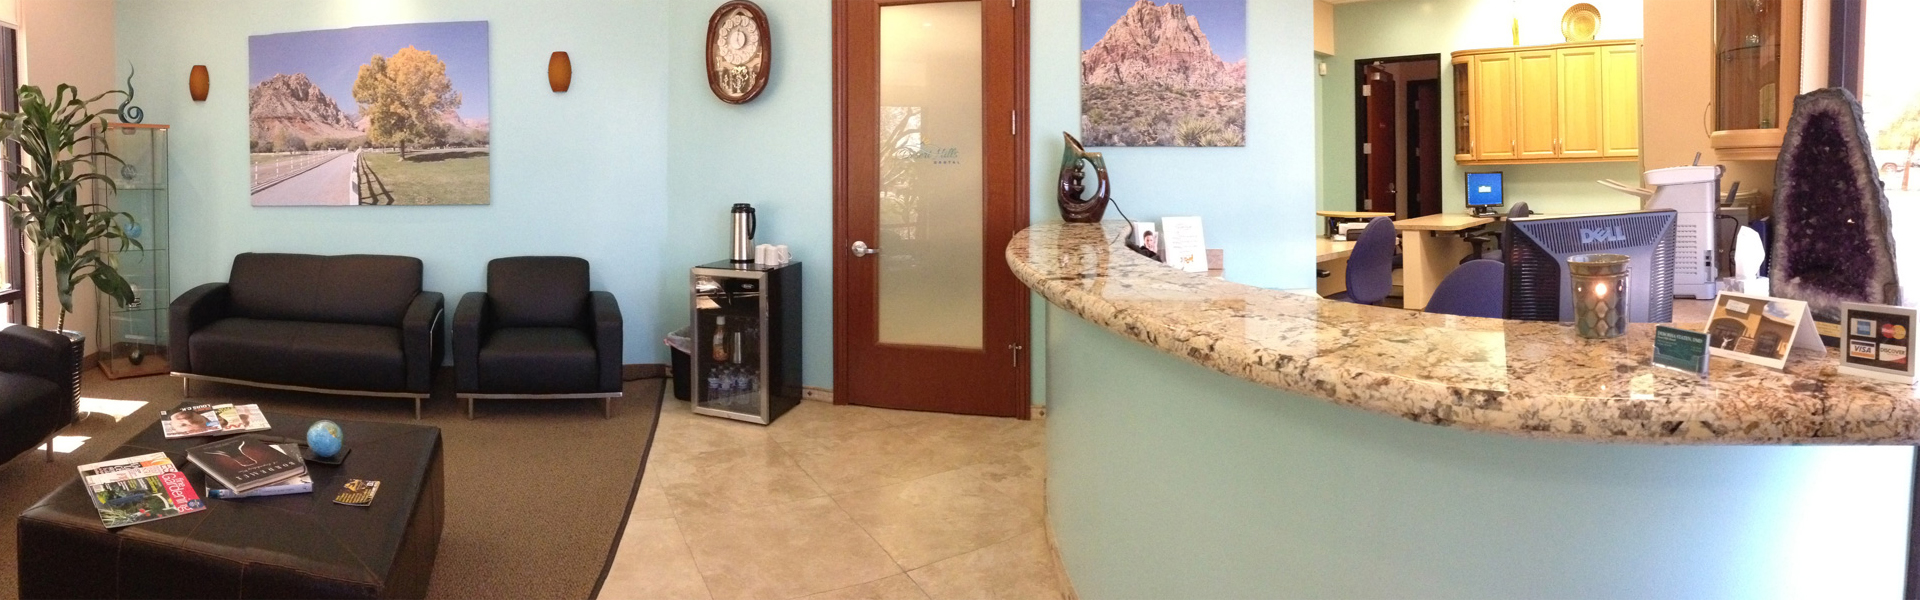 Desert Hills Dental view from entrance of waiting room and check-in desk